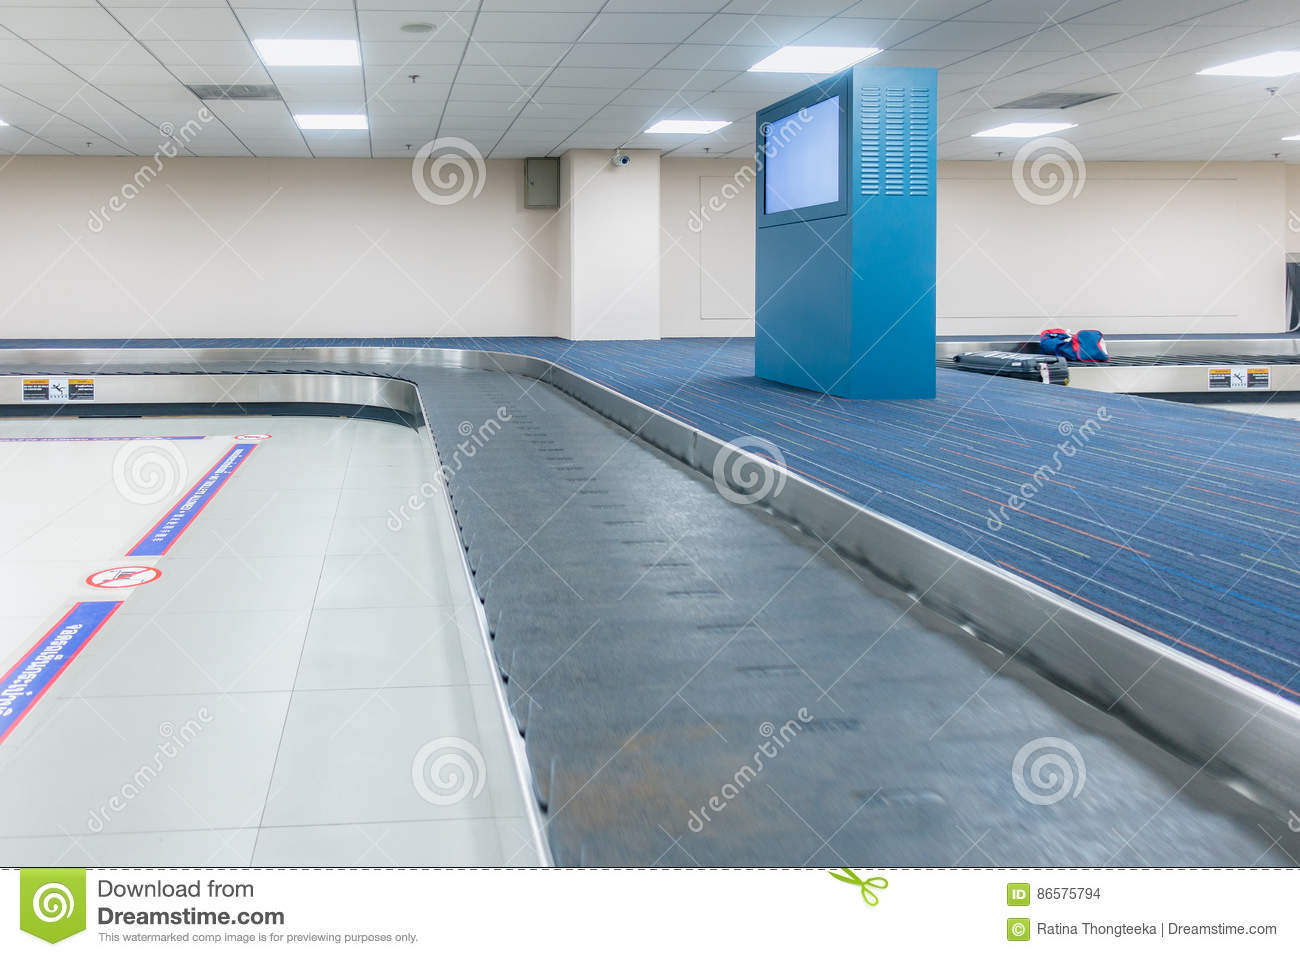 Download Empty Conveyor Belt For Carrying The Passenger Luggage Or Baggag Stock Photo - Image of motion, suitcase: 86575794